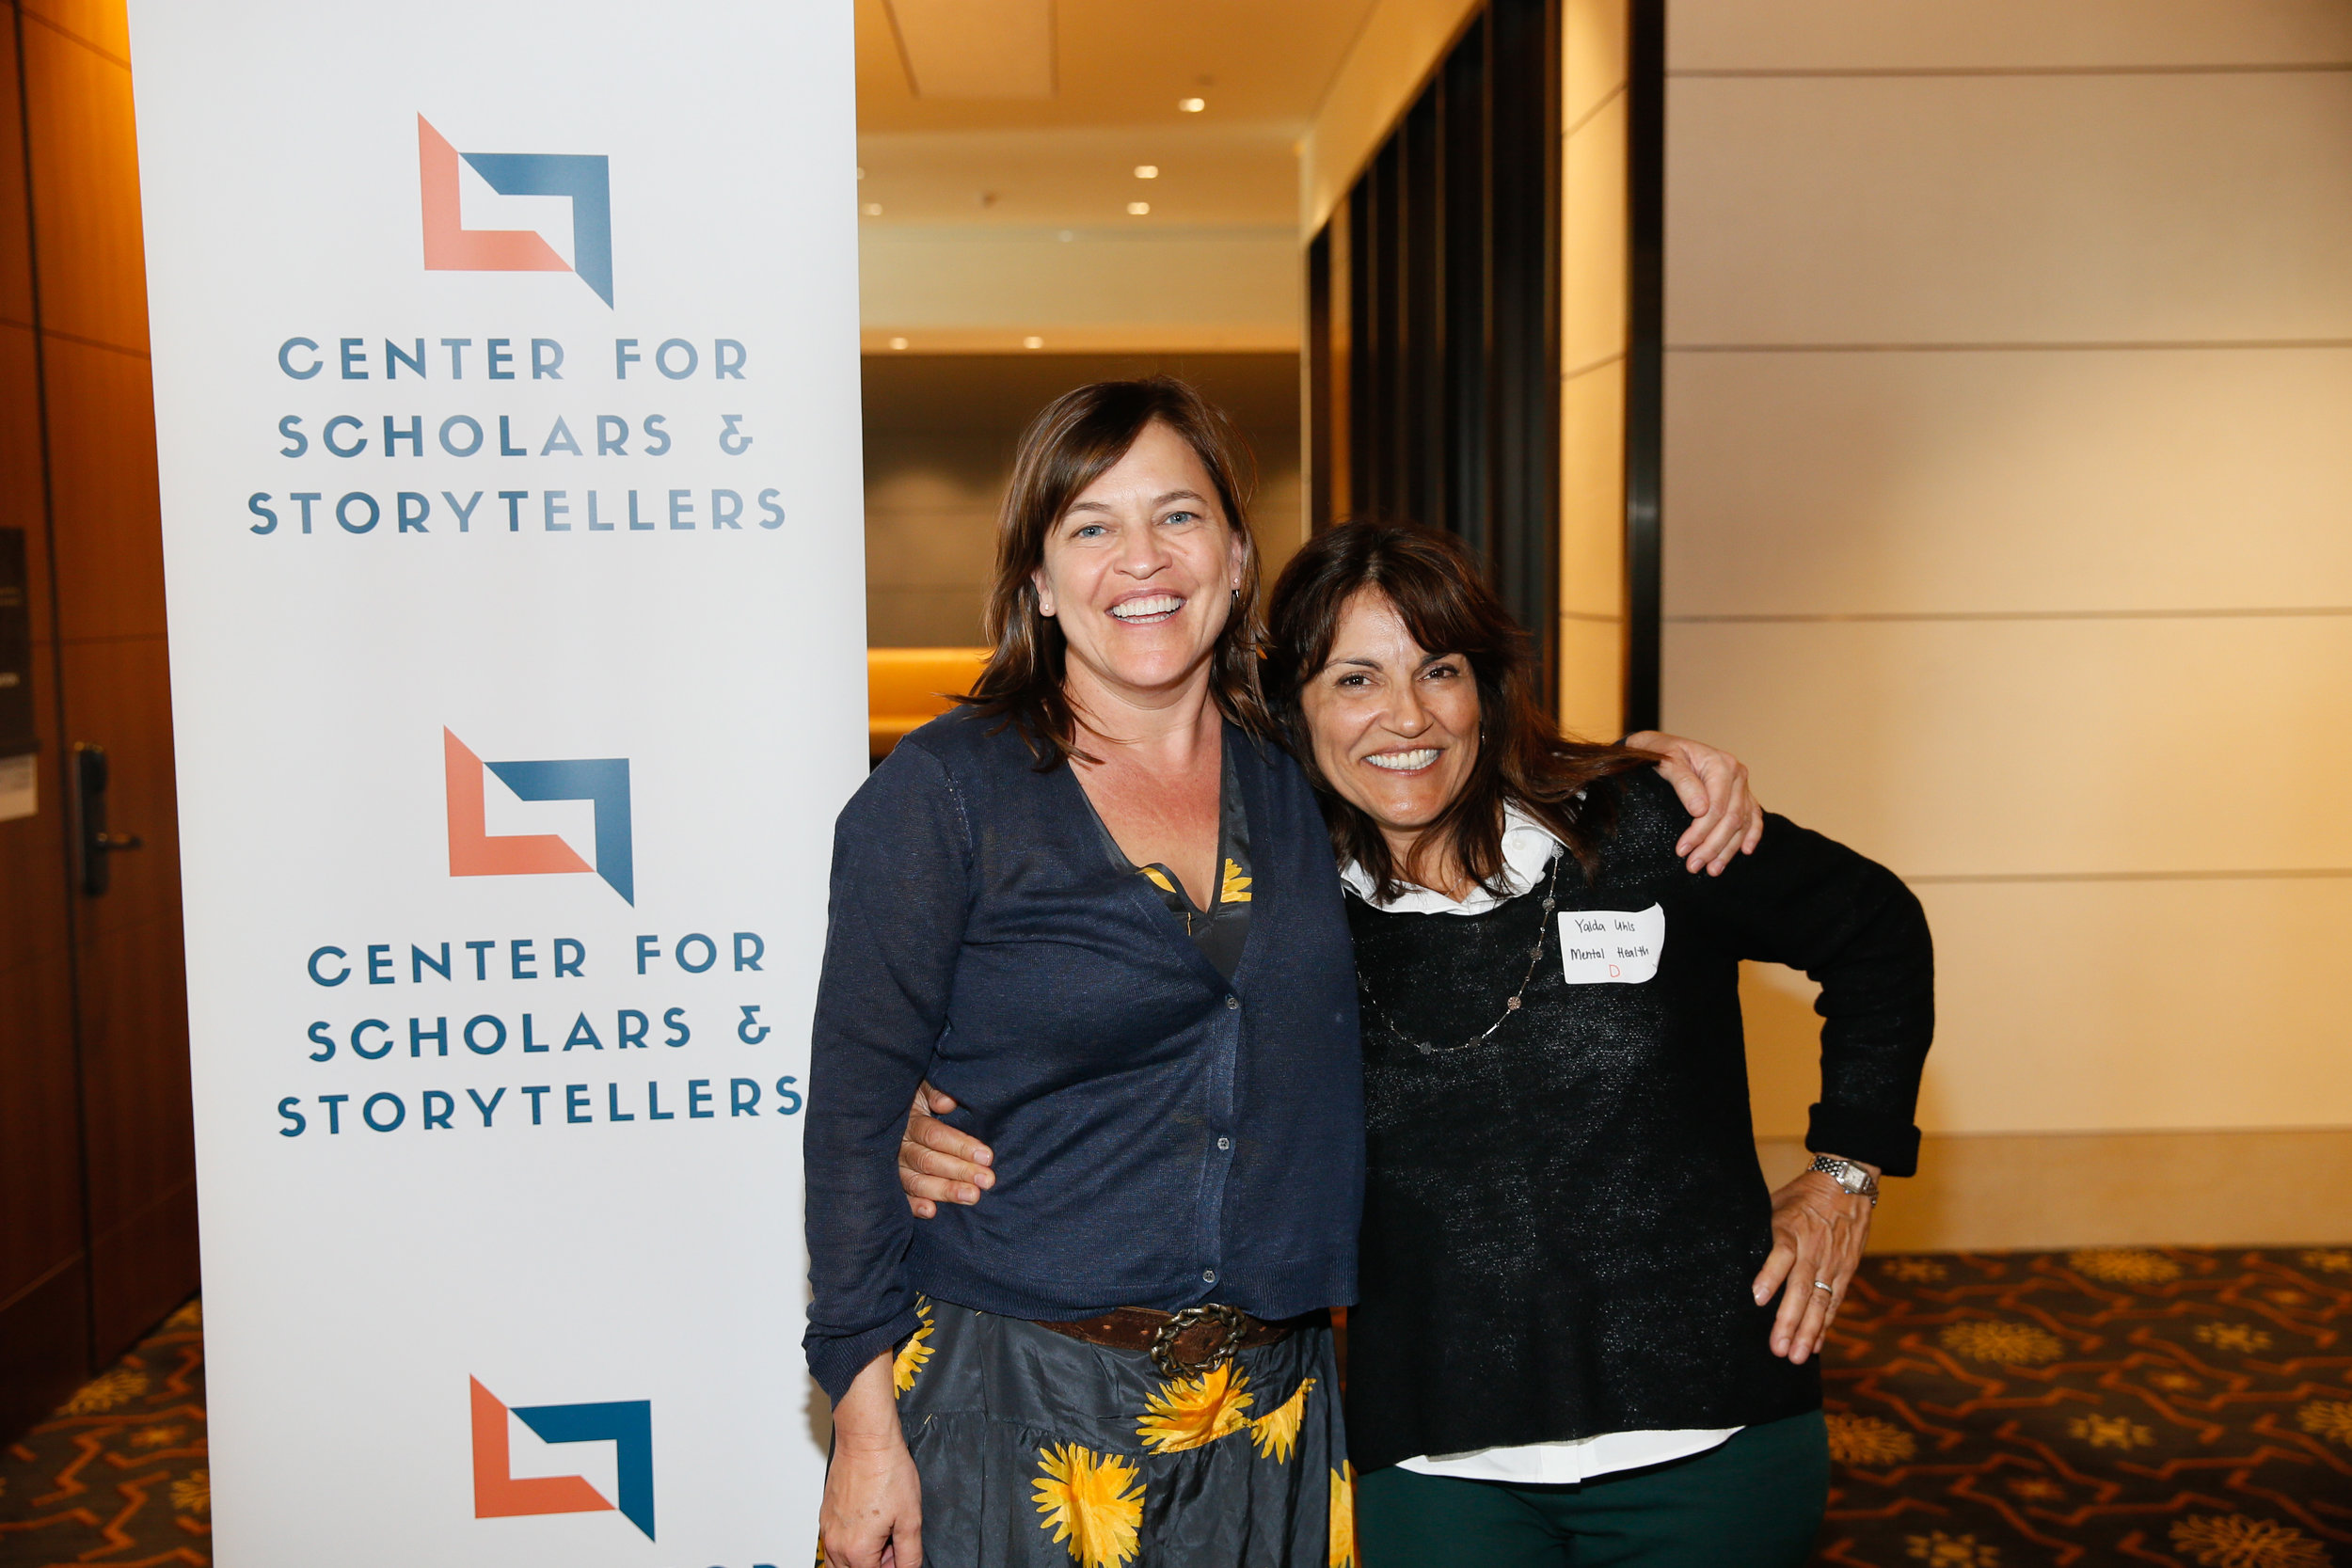 Executive Producer of Activism at Anonymous Content Bedonna Smith (left) with CSS Founder and Executive Director Dr. Yalda T. Uhls (right).